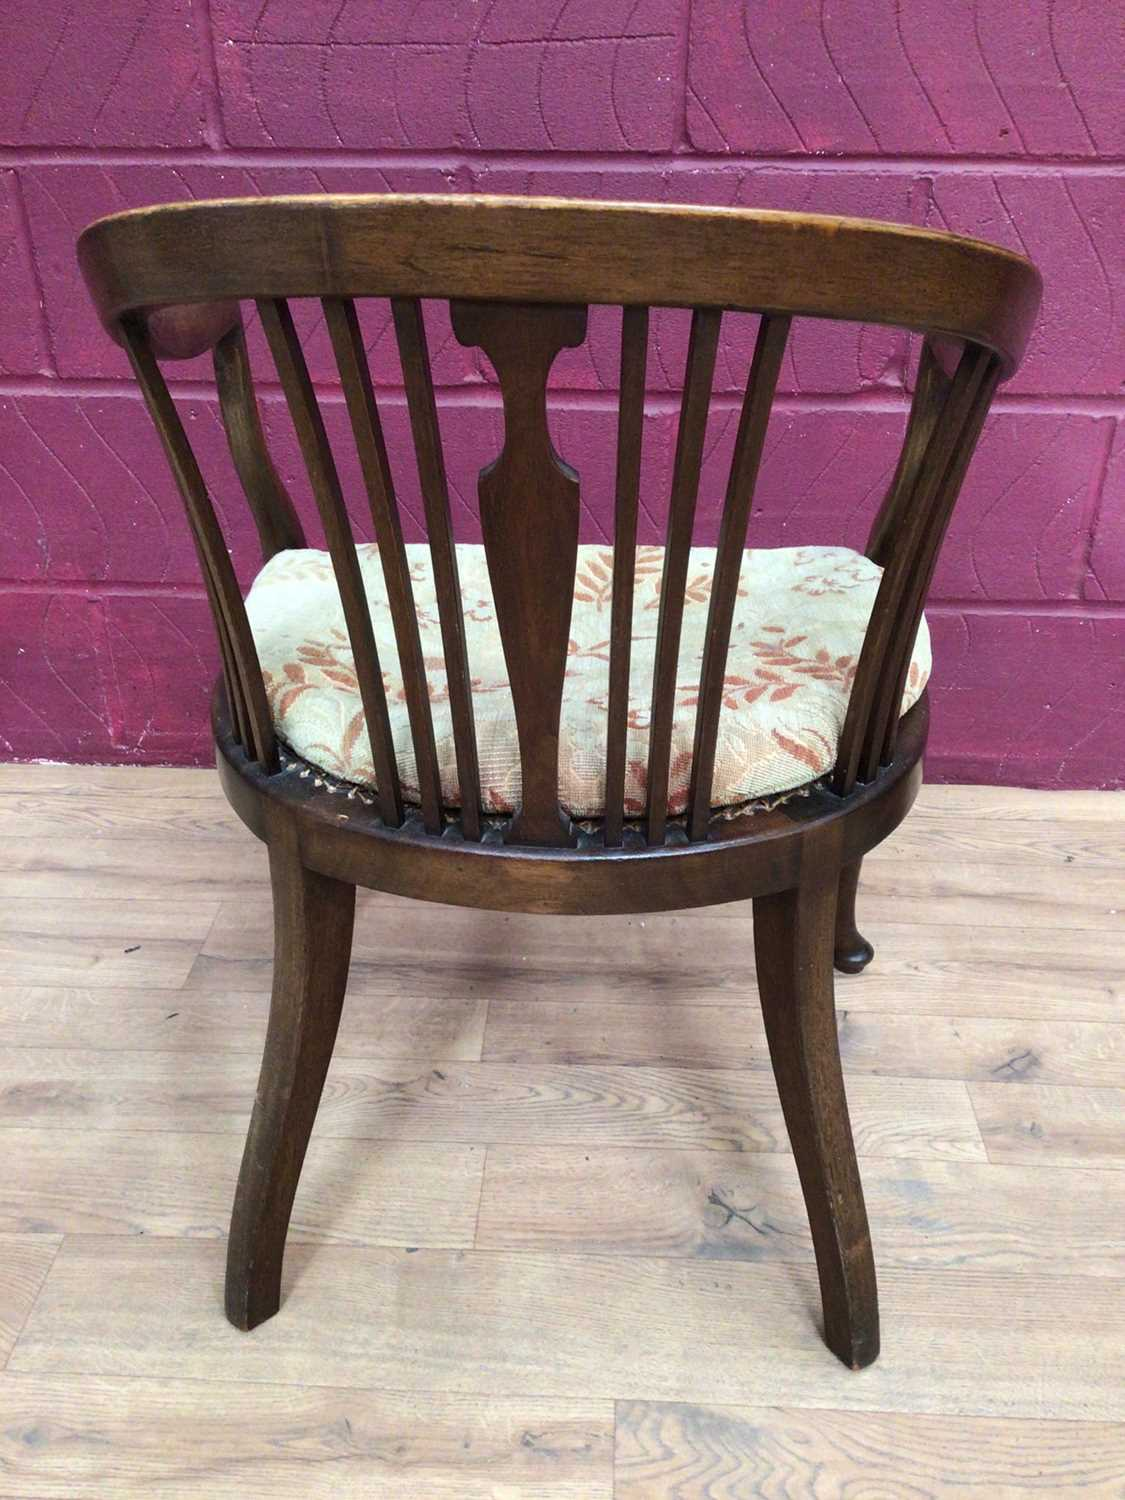 Edwardian mahogany tub chair with caned seat and a mahogany framed oval wall mirror (2) - Image 4 of 6